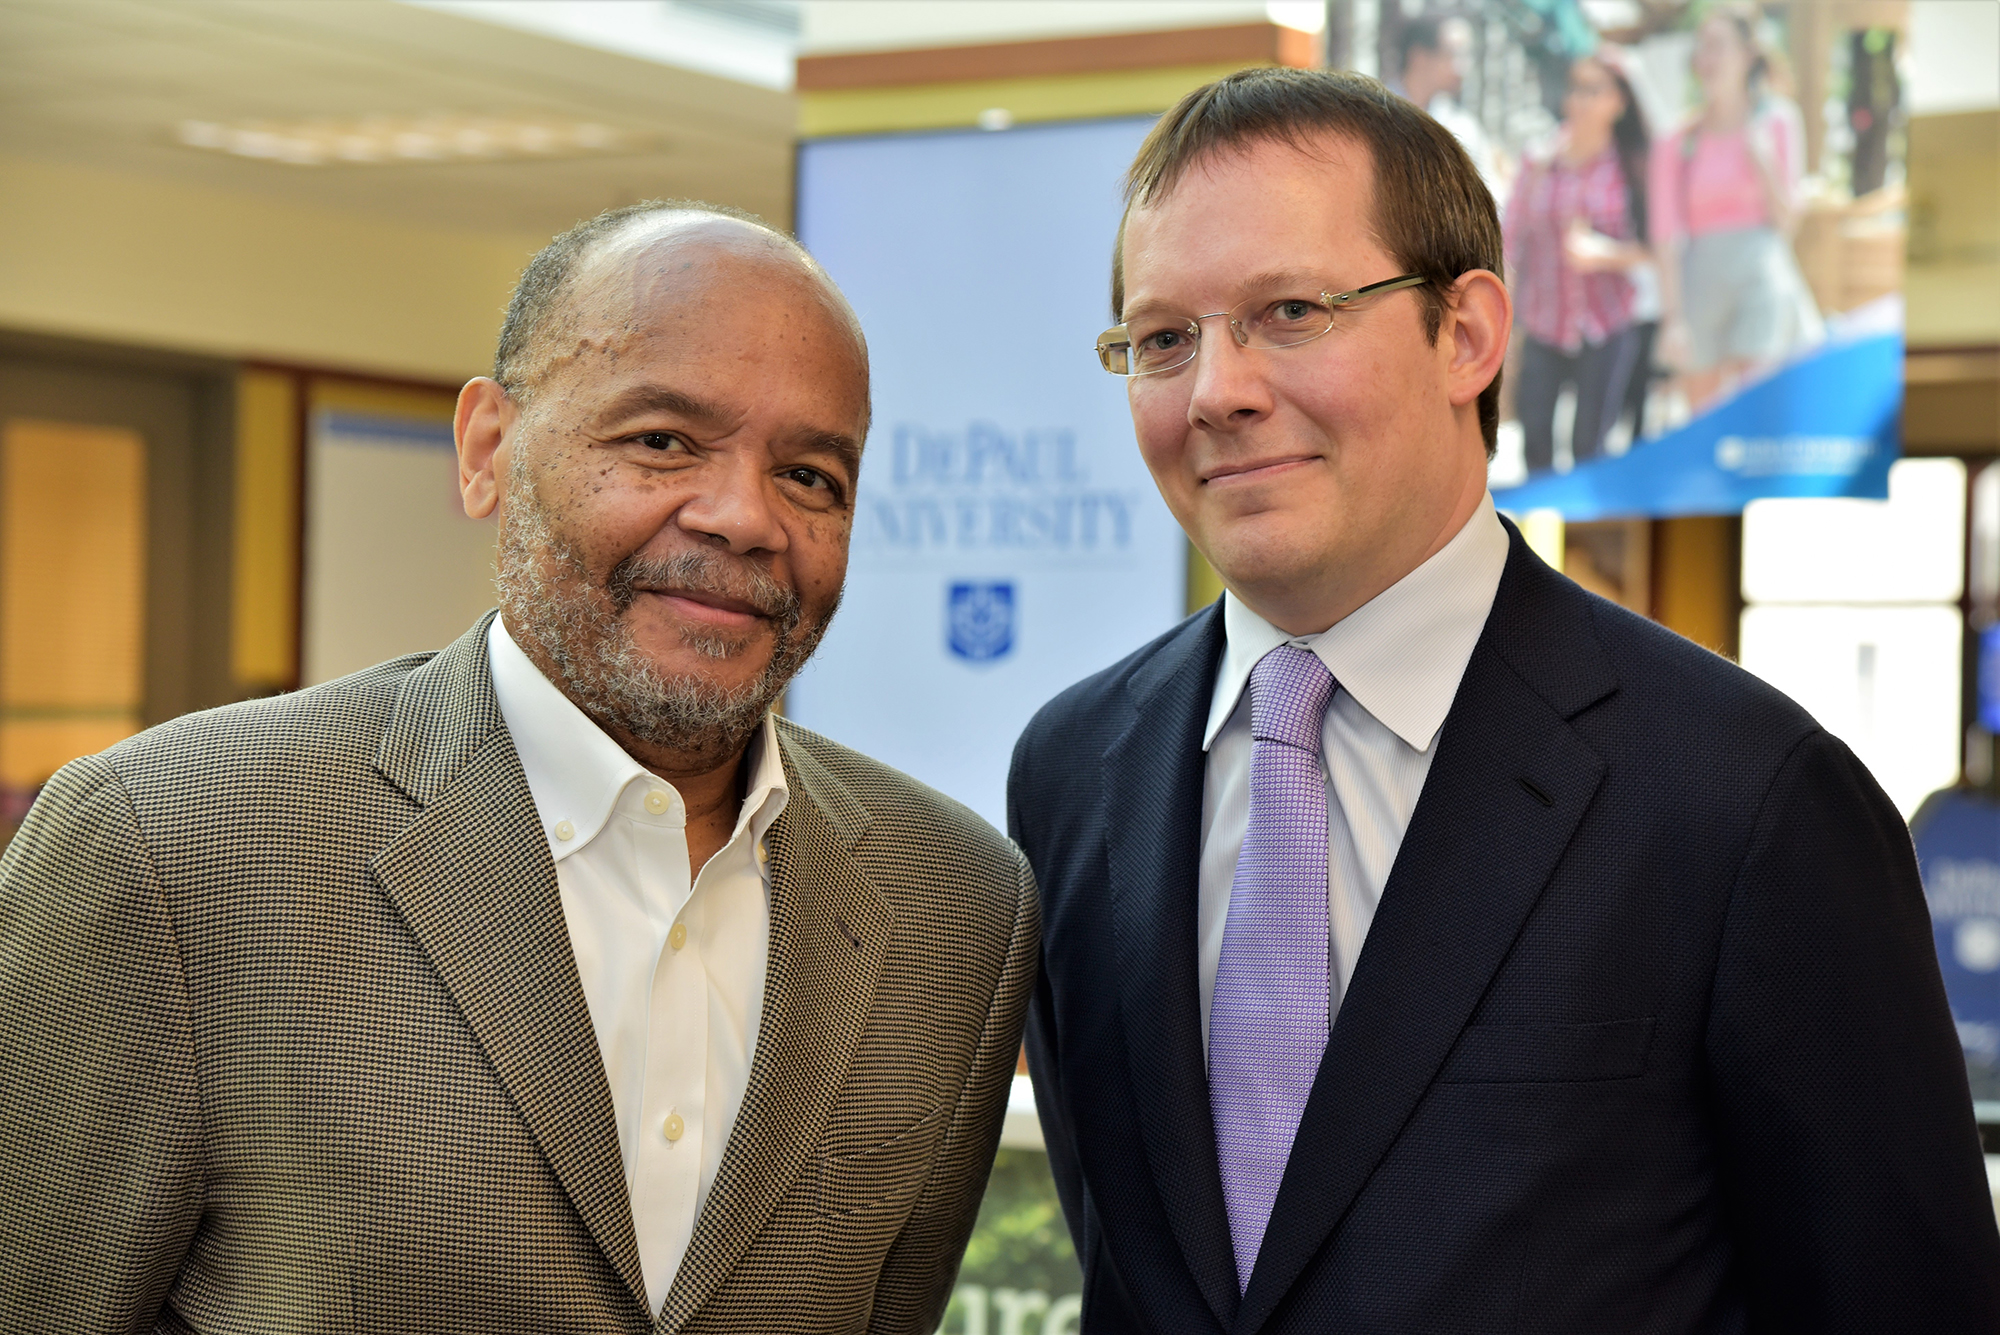 Elijah Brewer, chair of DePaul's Department of Finance, and Paul G. Savor, newly appointed Christopher L. Keeley Chair in Investment Management.